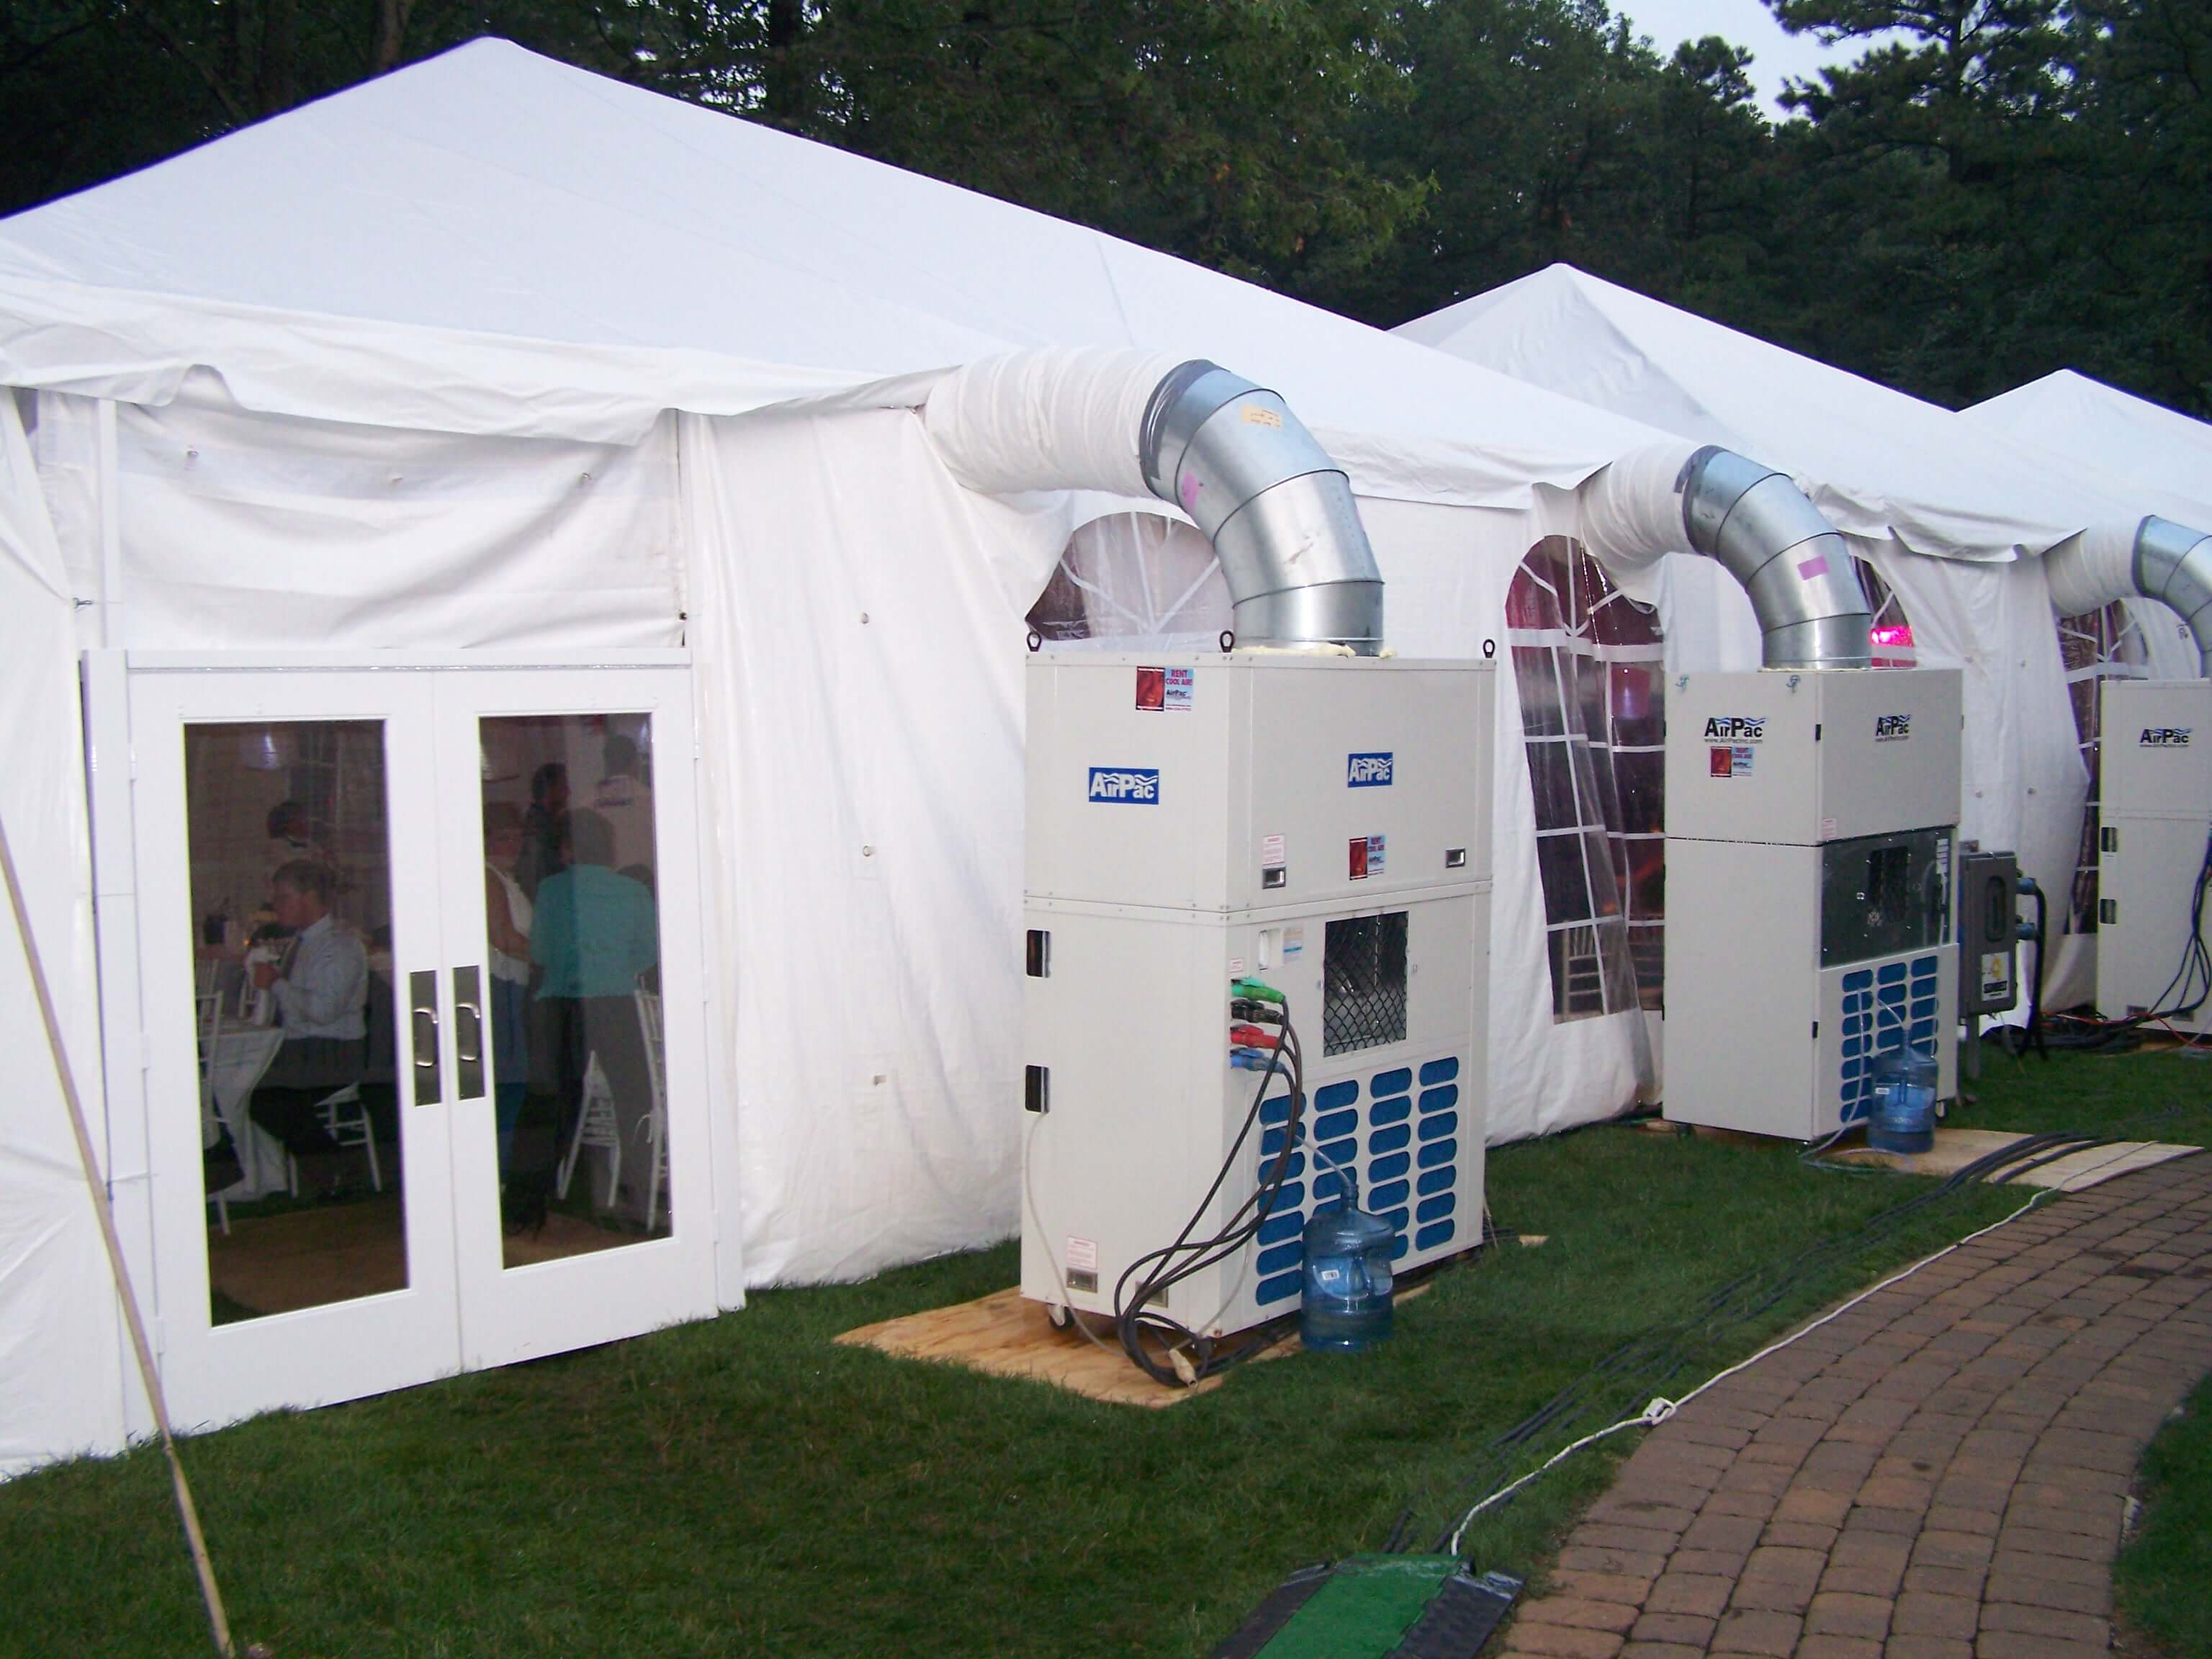 Call ... & Party Tent Lighting u0026 Accessories | Grimes Events u0026 Party Tents